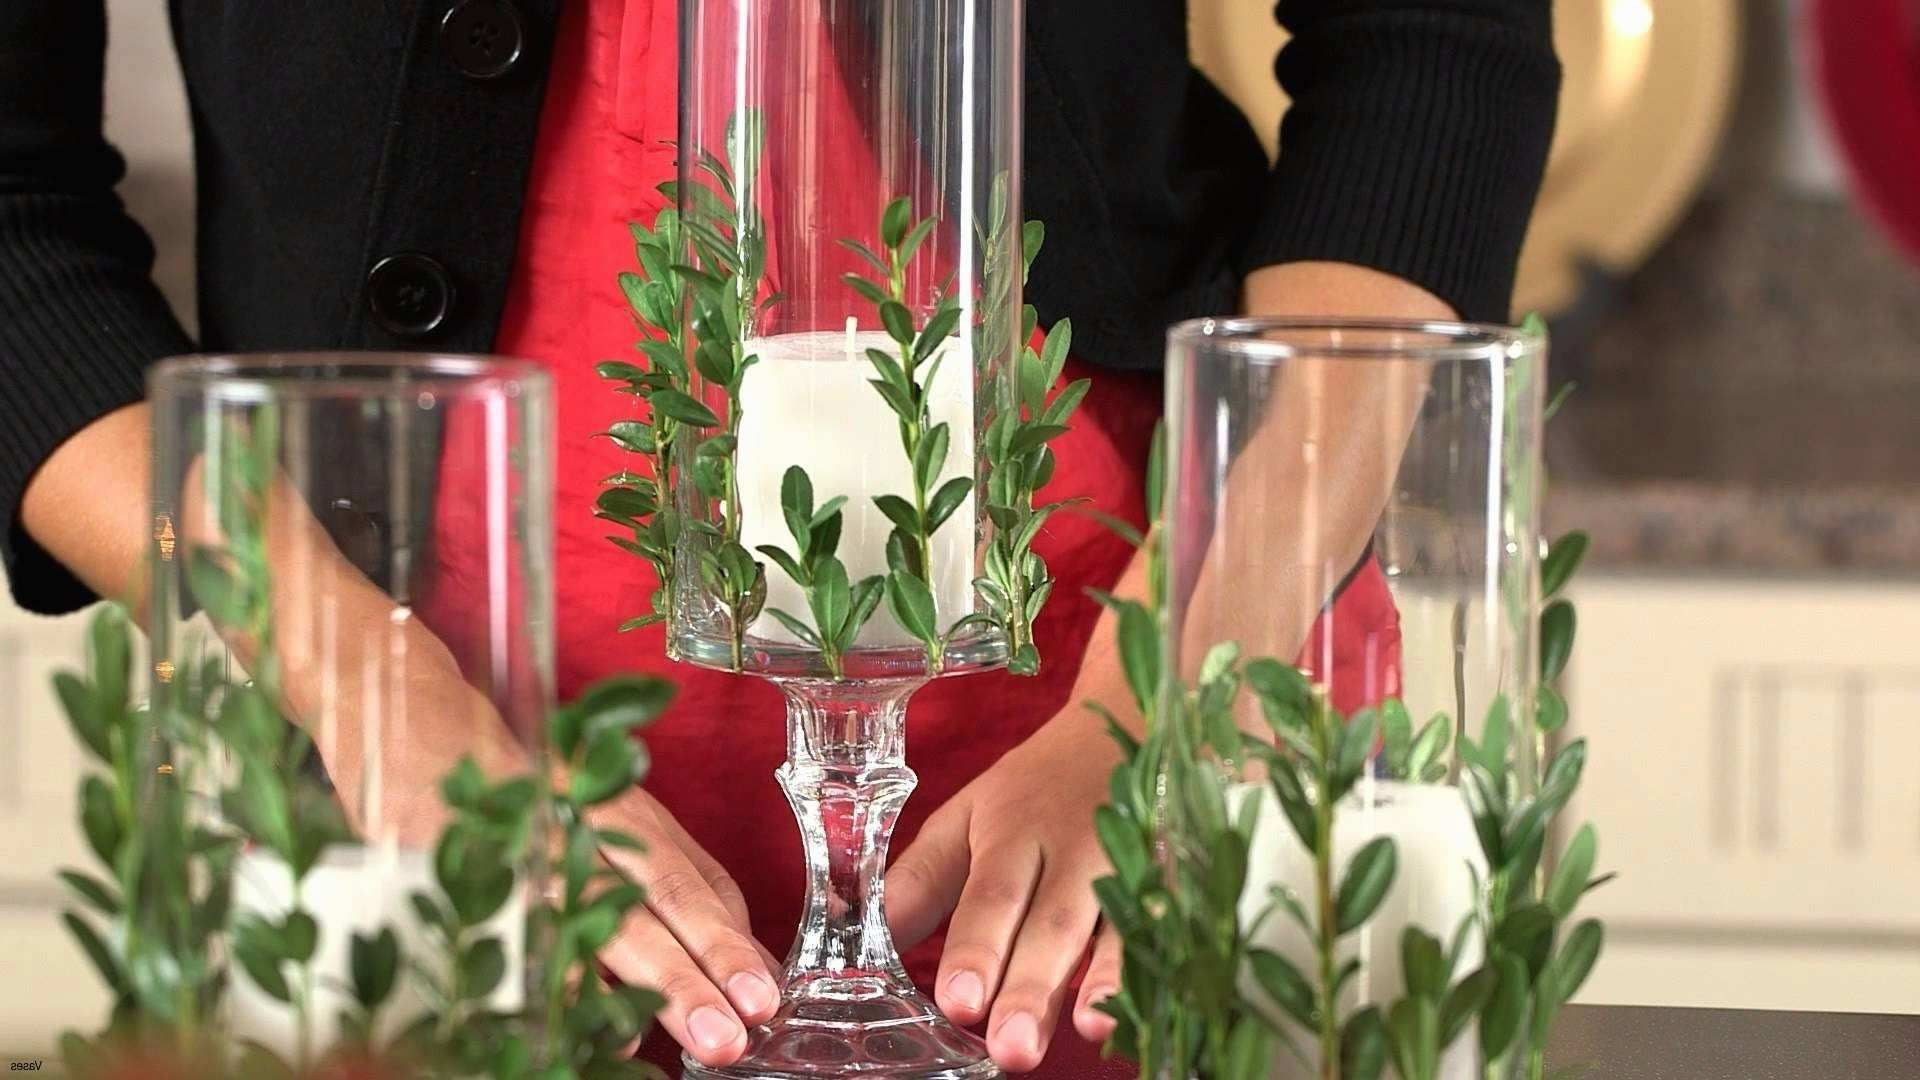 cheap cylinder vases for wedding centerpieces of how to decorate a vase elegant 47 awesome pedestal bowls for inside how to decorate a vase elegant 47 awesome pedestal bowls for centerpieces